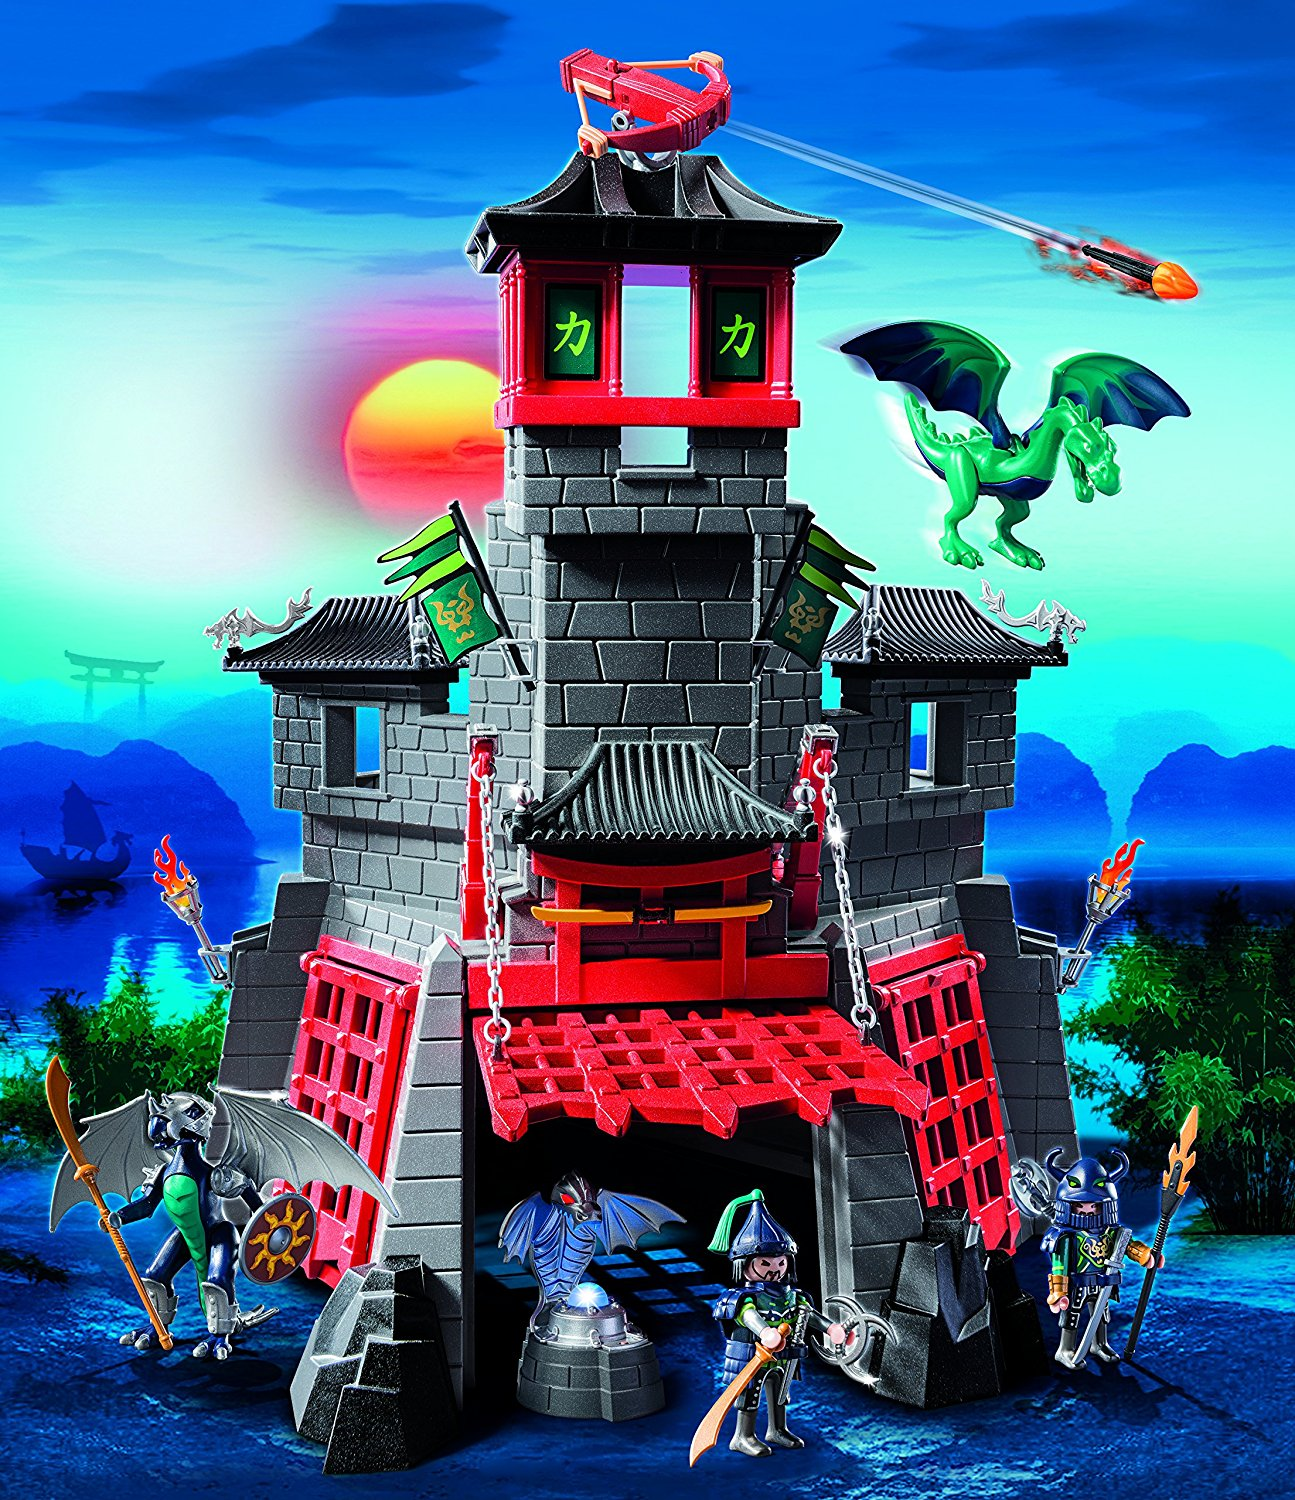 Citadelle secr te du dragon 5480 playmobil ch teau fort for Plan chateau fort playmobil